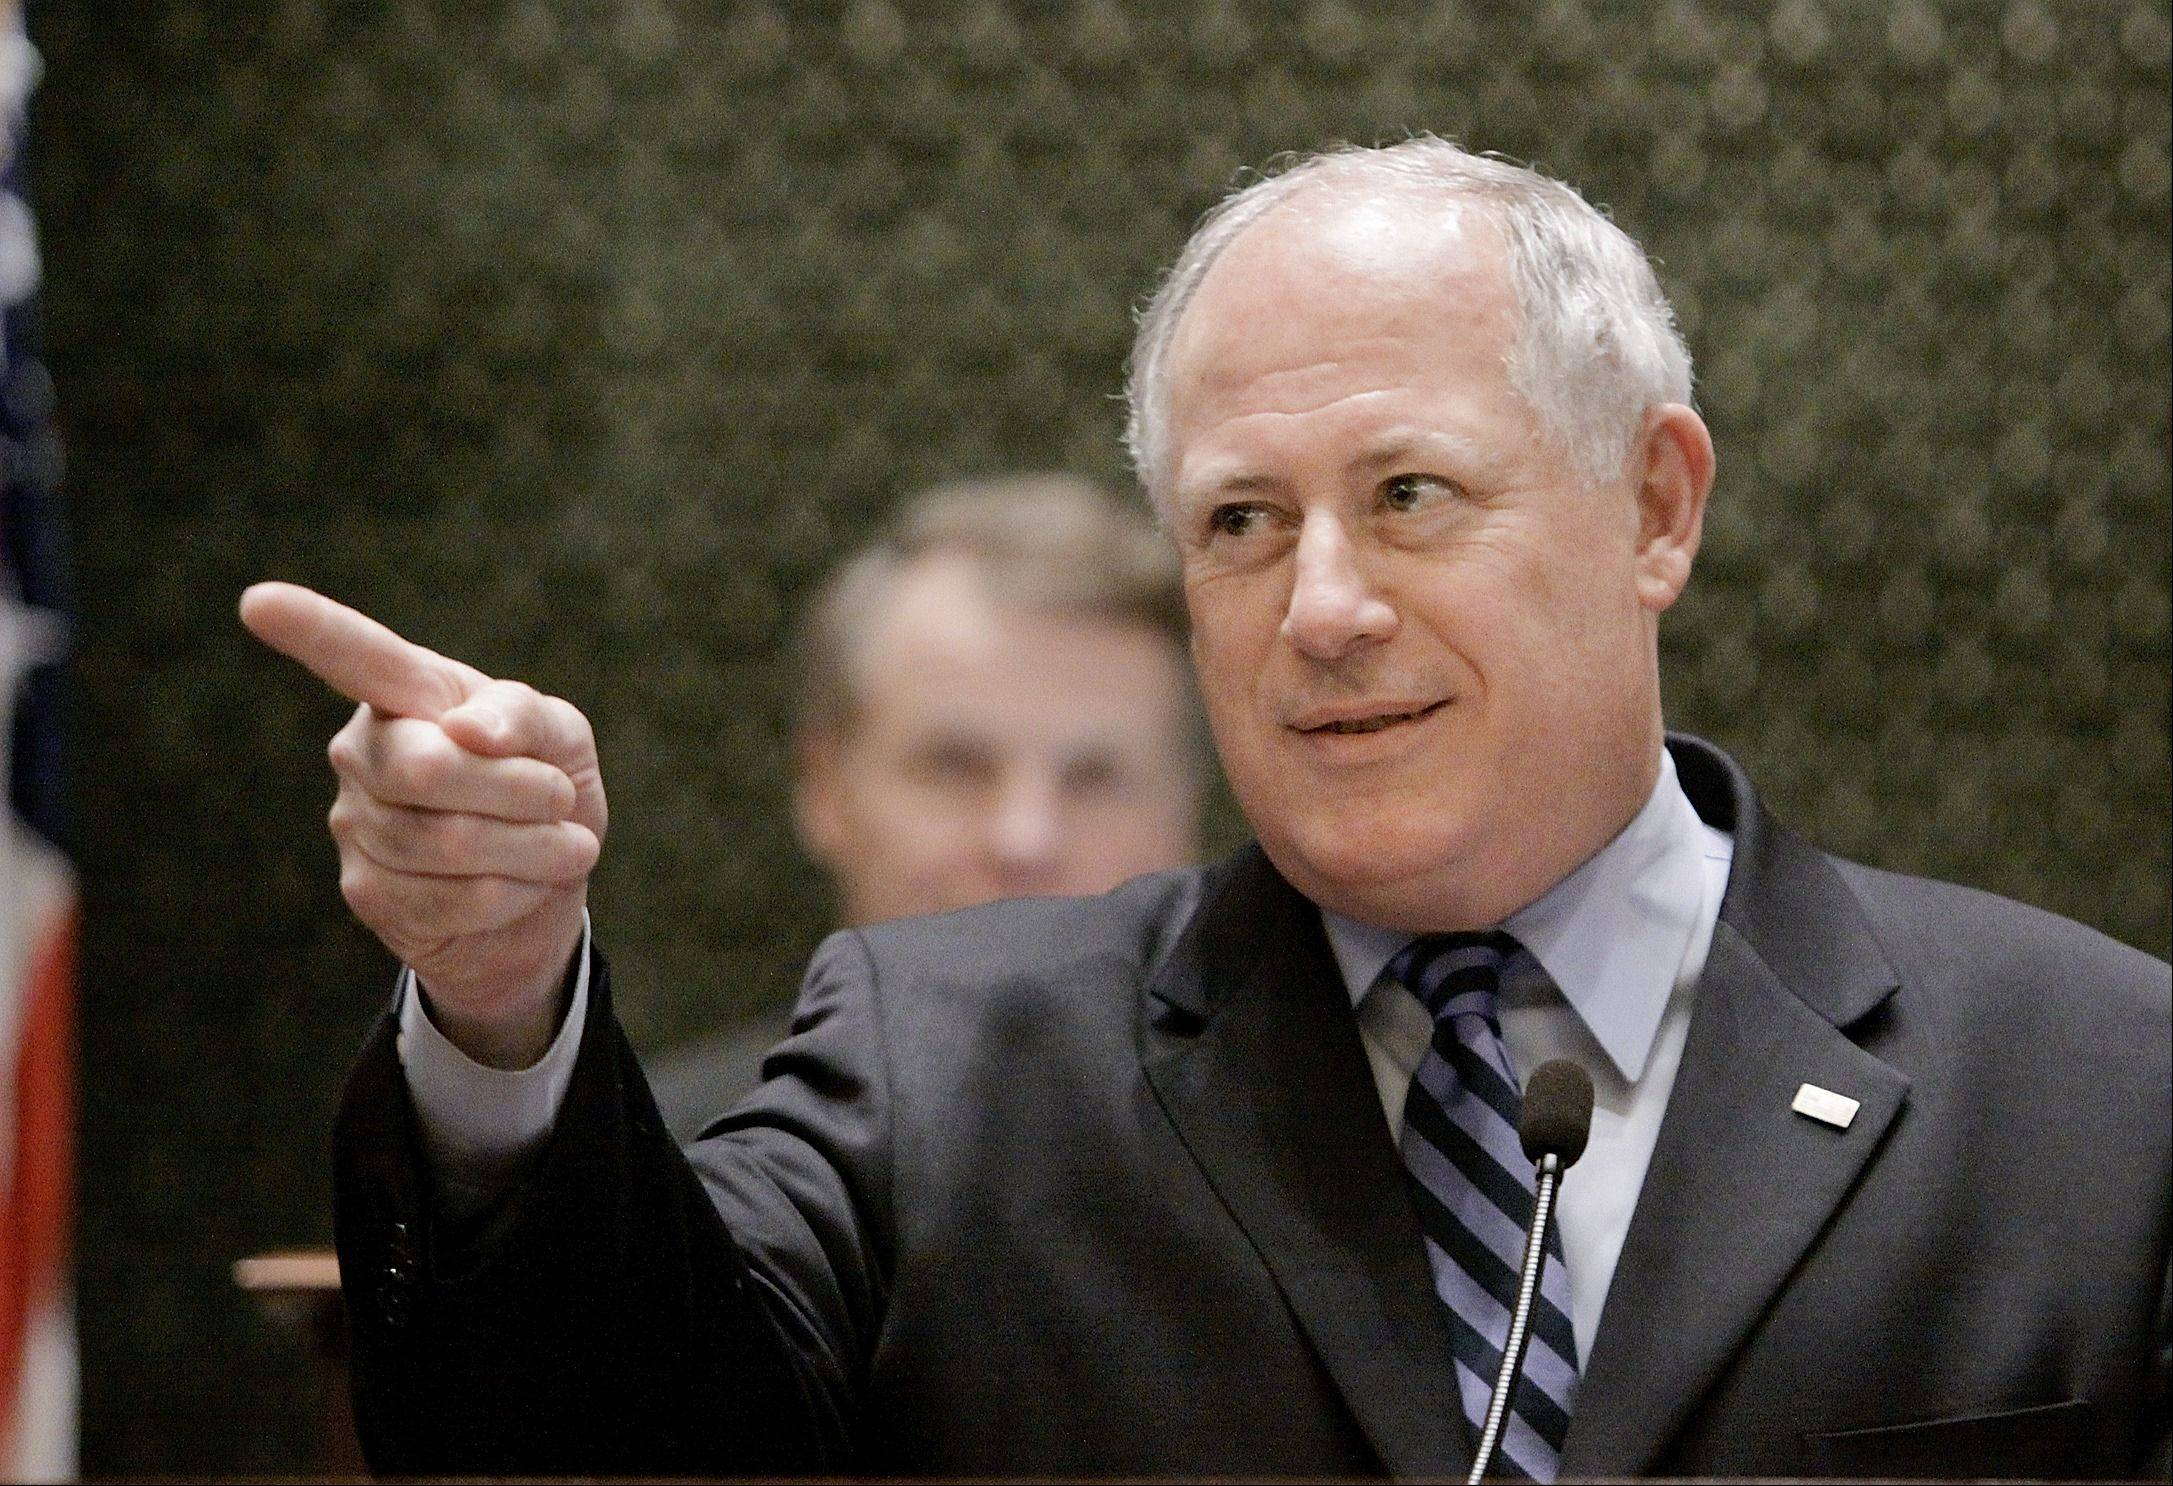 Gov. Pat Quinn will lead a trade mission to Mexico this week in an effort to increase ties between that nation and Illinois.